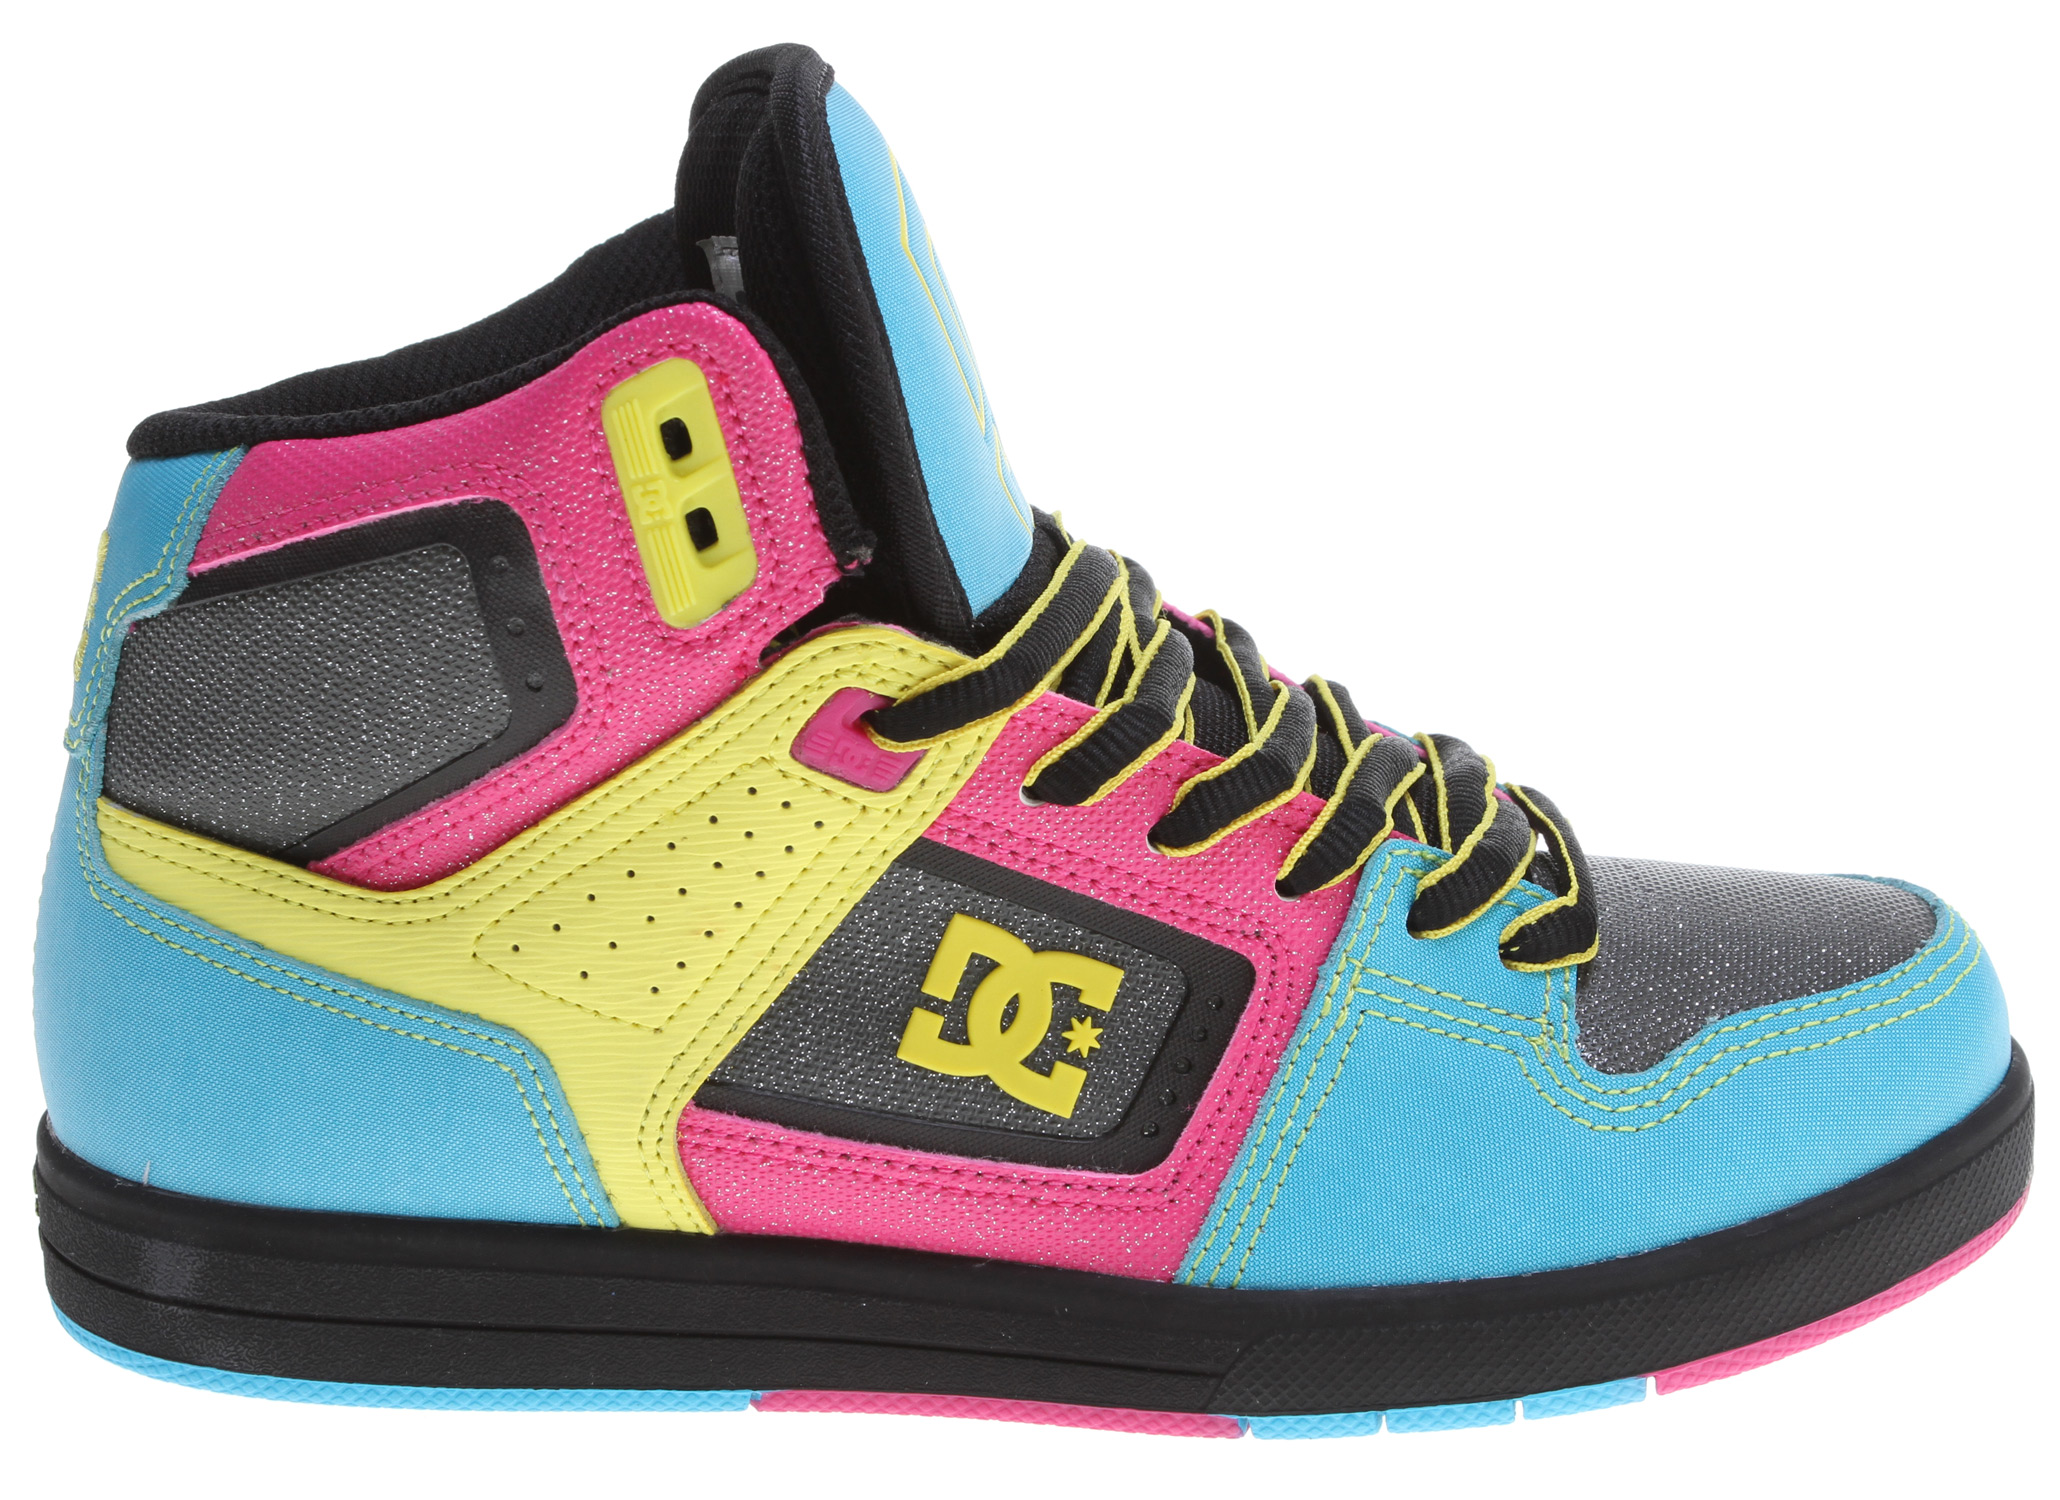 Skateboard DC Destroyer Hi Skate Shoes - $44.95